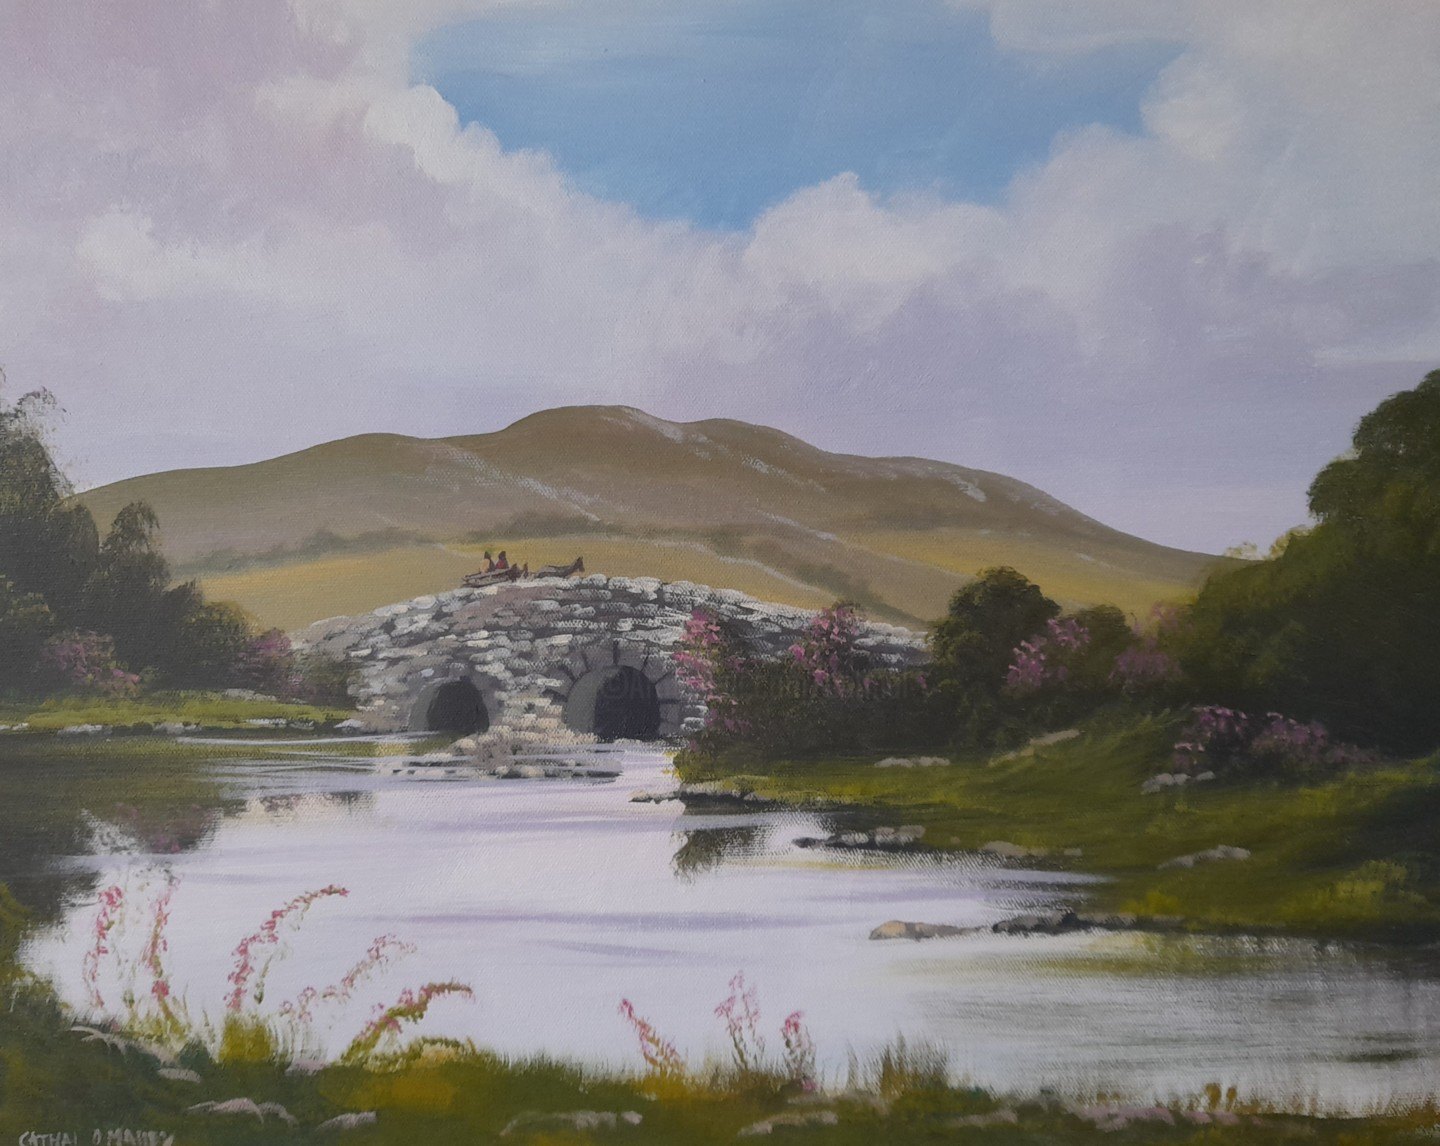 Cathal O Malley - Quiet man bridge 21